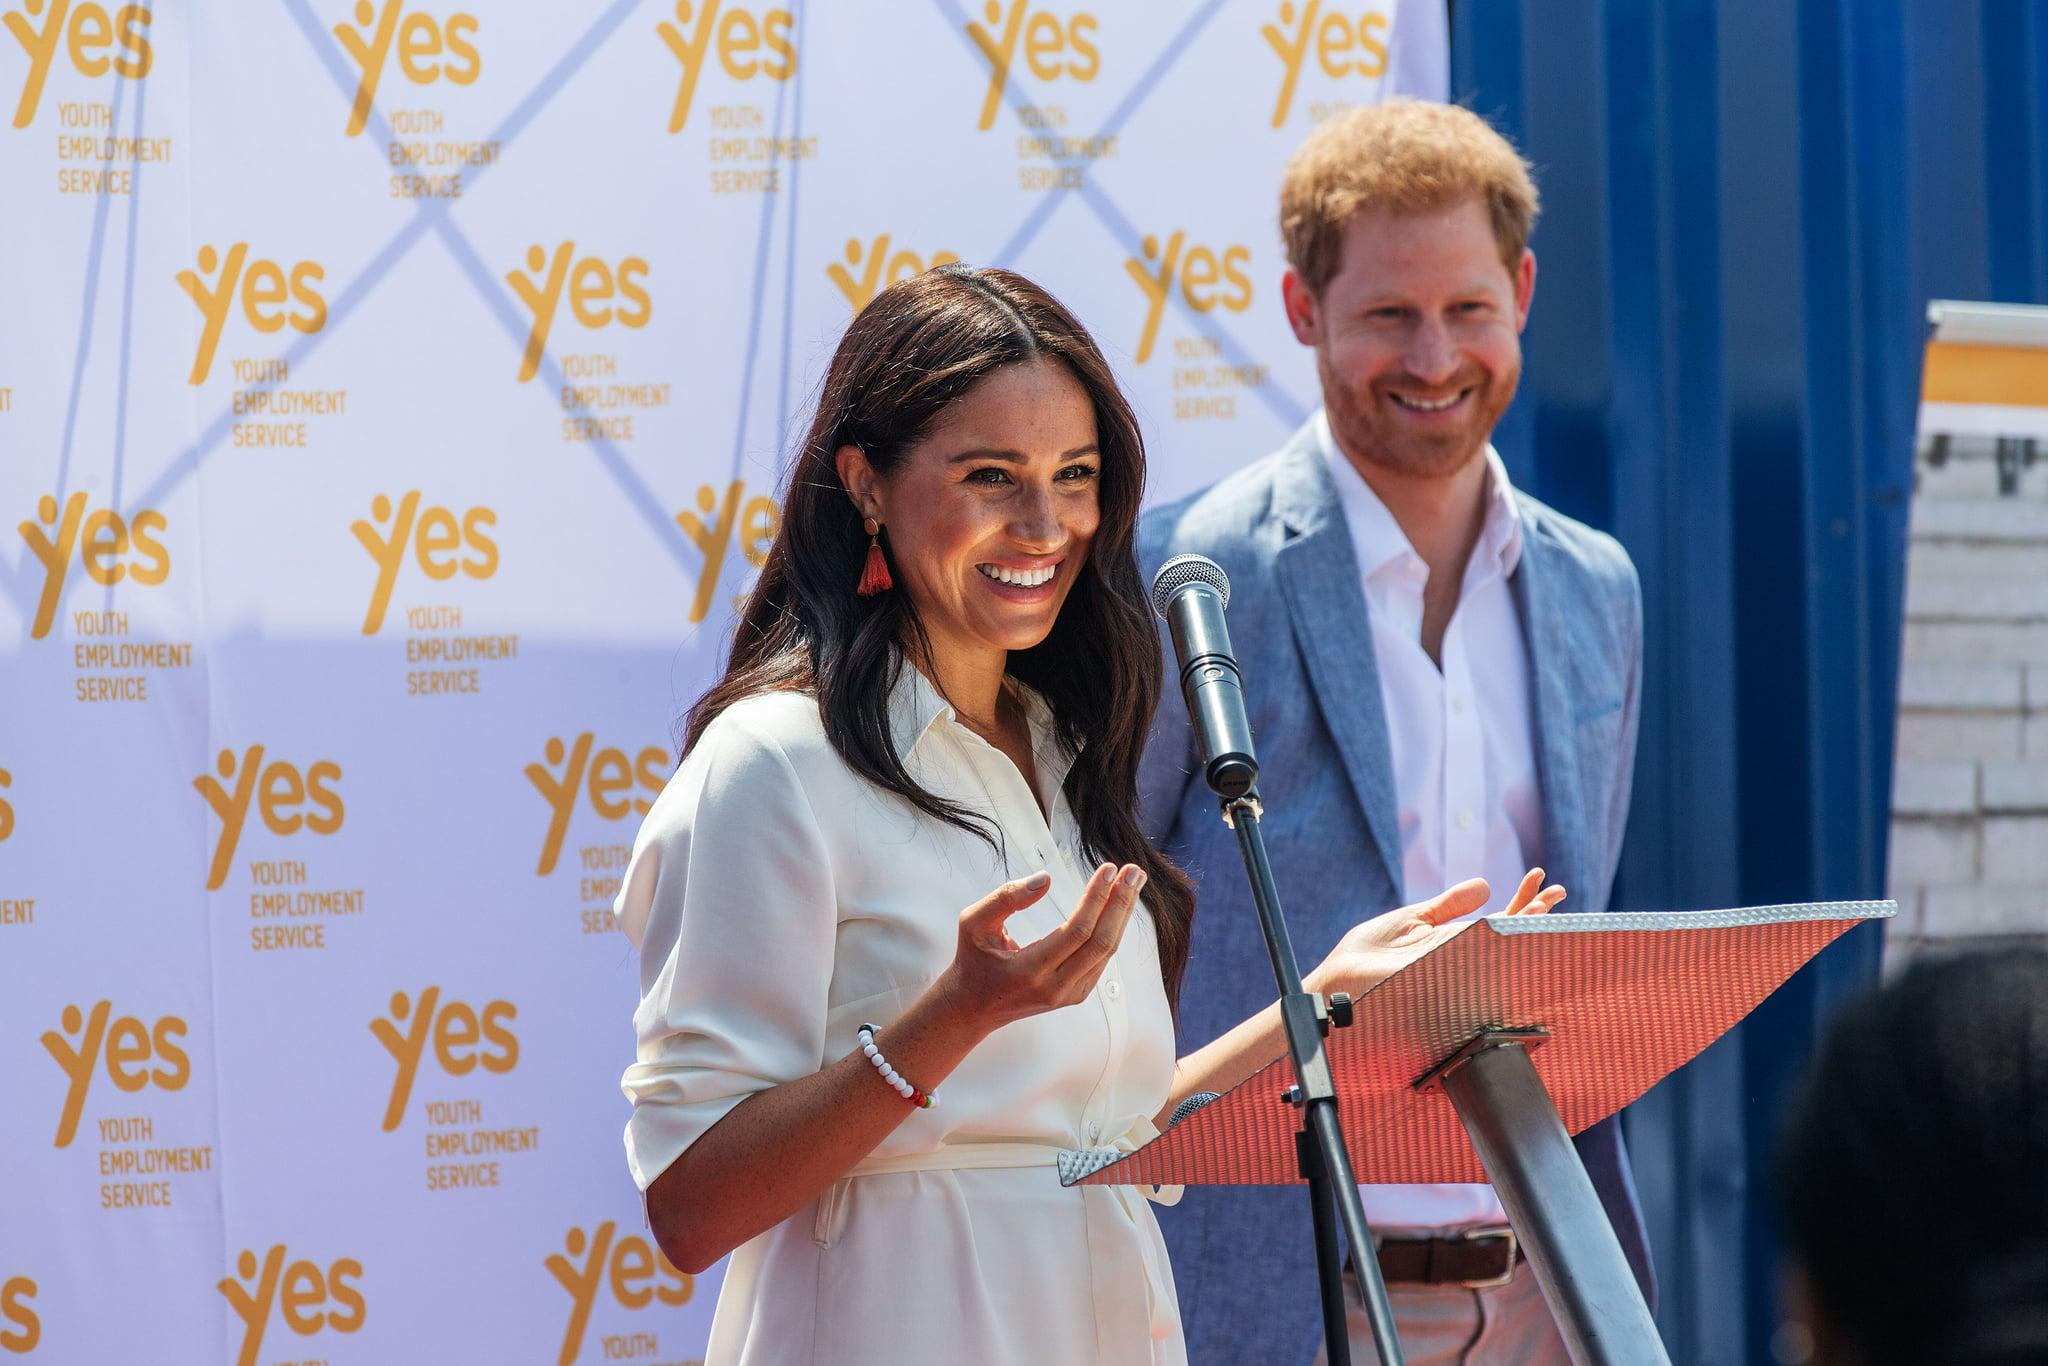 Meghan, Duchess of Sussex(L), is watched by Britain's Prince Harry, Duke of Sussex(R) as  she delivers a speech at the Youth Employment Services Hub in Tembisa township, Johannesburg, on October 2, 2019. - Meghan Markle is suing Britain's Mail On Sunday newspaper over the publication of a private letter, her husband Prince Harry has said, warning they had been forced to take action against